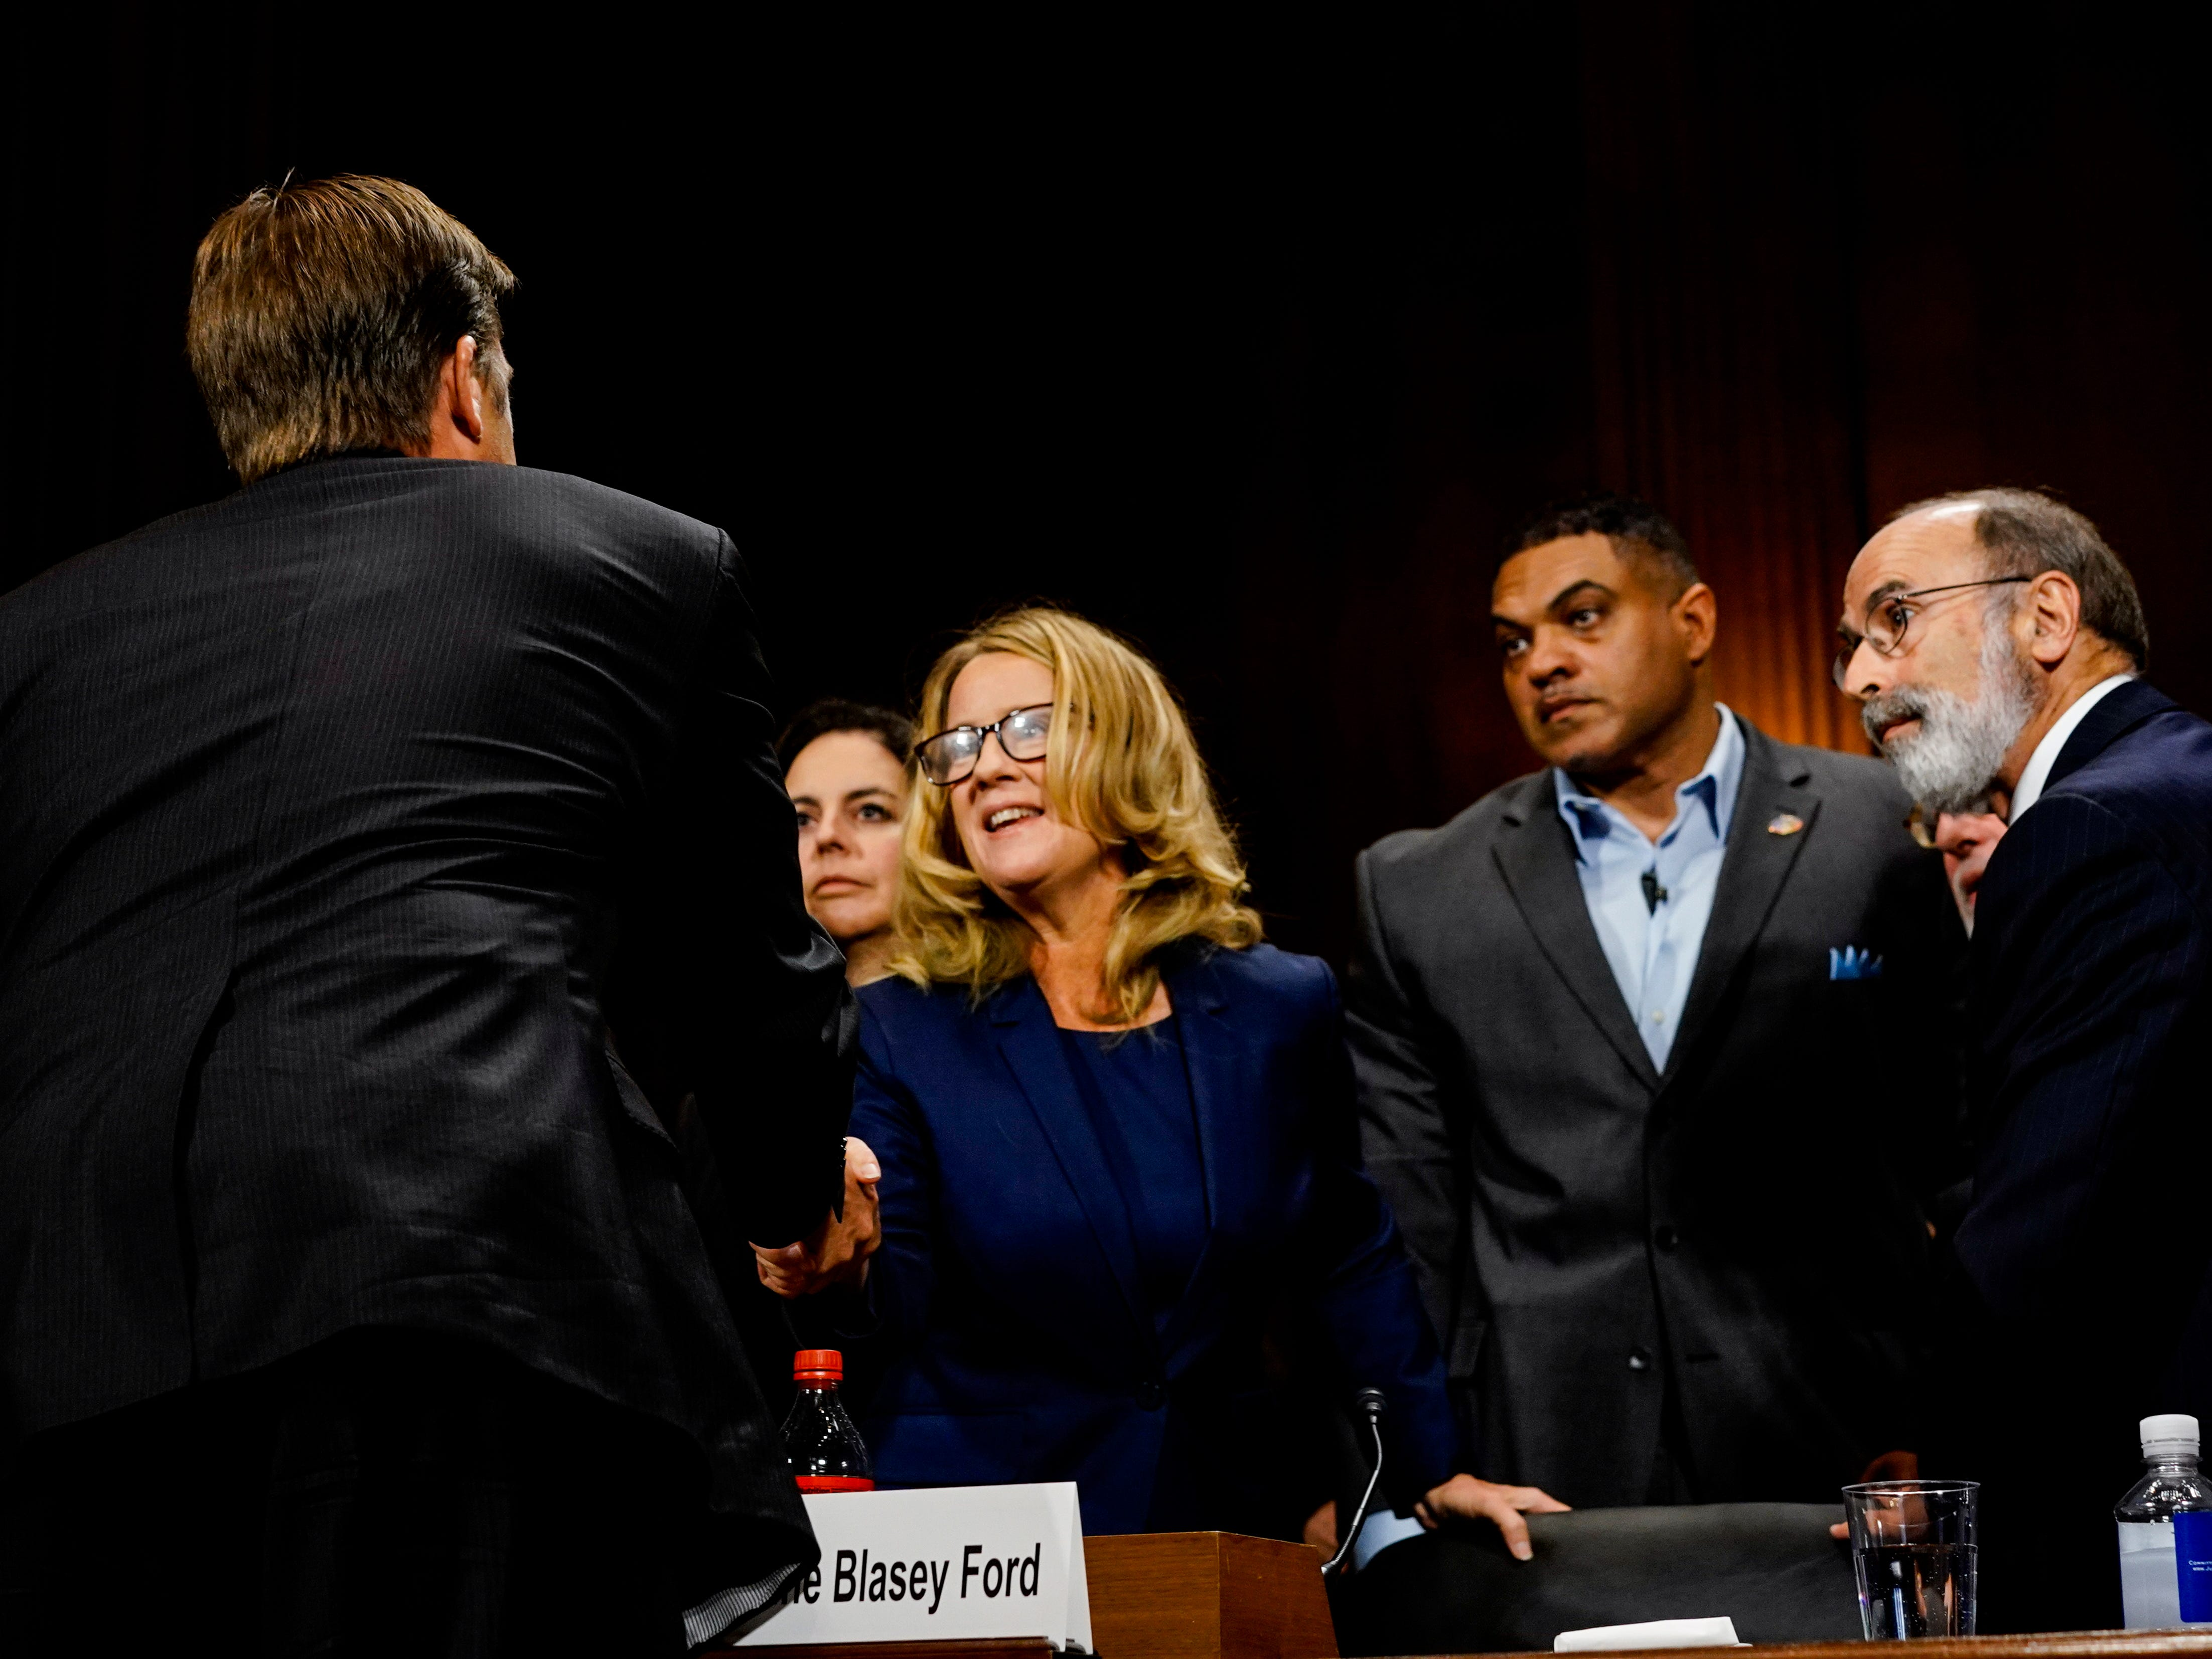 epa07051887 Christine Blasey Ford (C) is greeted by Senator Ben Sasse (C-back) during the Senate Judiciary Committee hearing on the nomination of Brett Kavanaugh to be an associate justice of the Supreme Court of the United States, on Capitol Hill in Washington, DC, USA, 27 September 2018. Others are not identified. US President Donald J. Trump's nominee to be a US Supreme Court associate justice Brett Kavanaugh is in a tumultuous confirmation process as multiple women have accused Kavanaugh of sexual misconduct.  EPA-EFE/MELINA MARA / POOL ORG XMIT: 132.0.1344537107